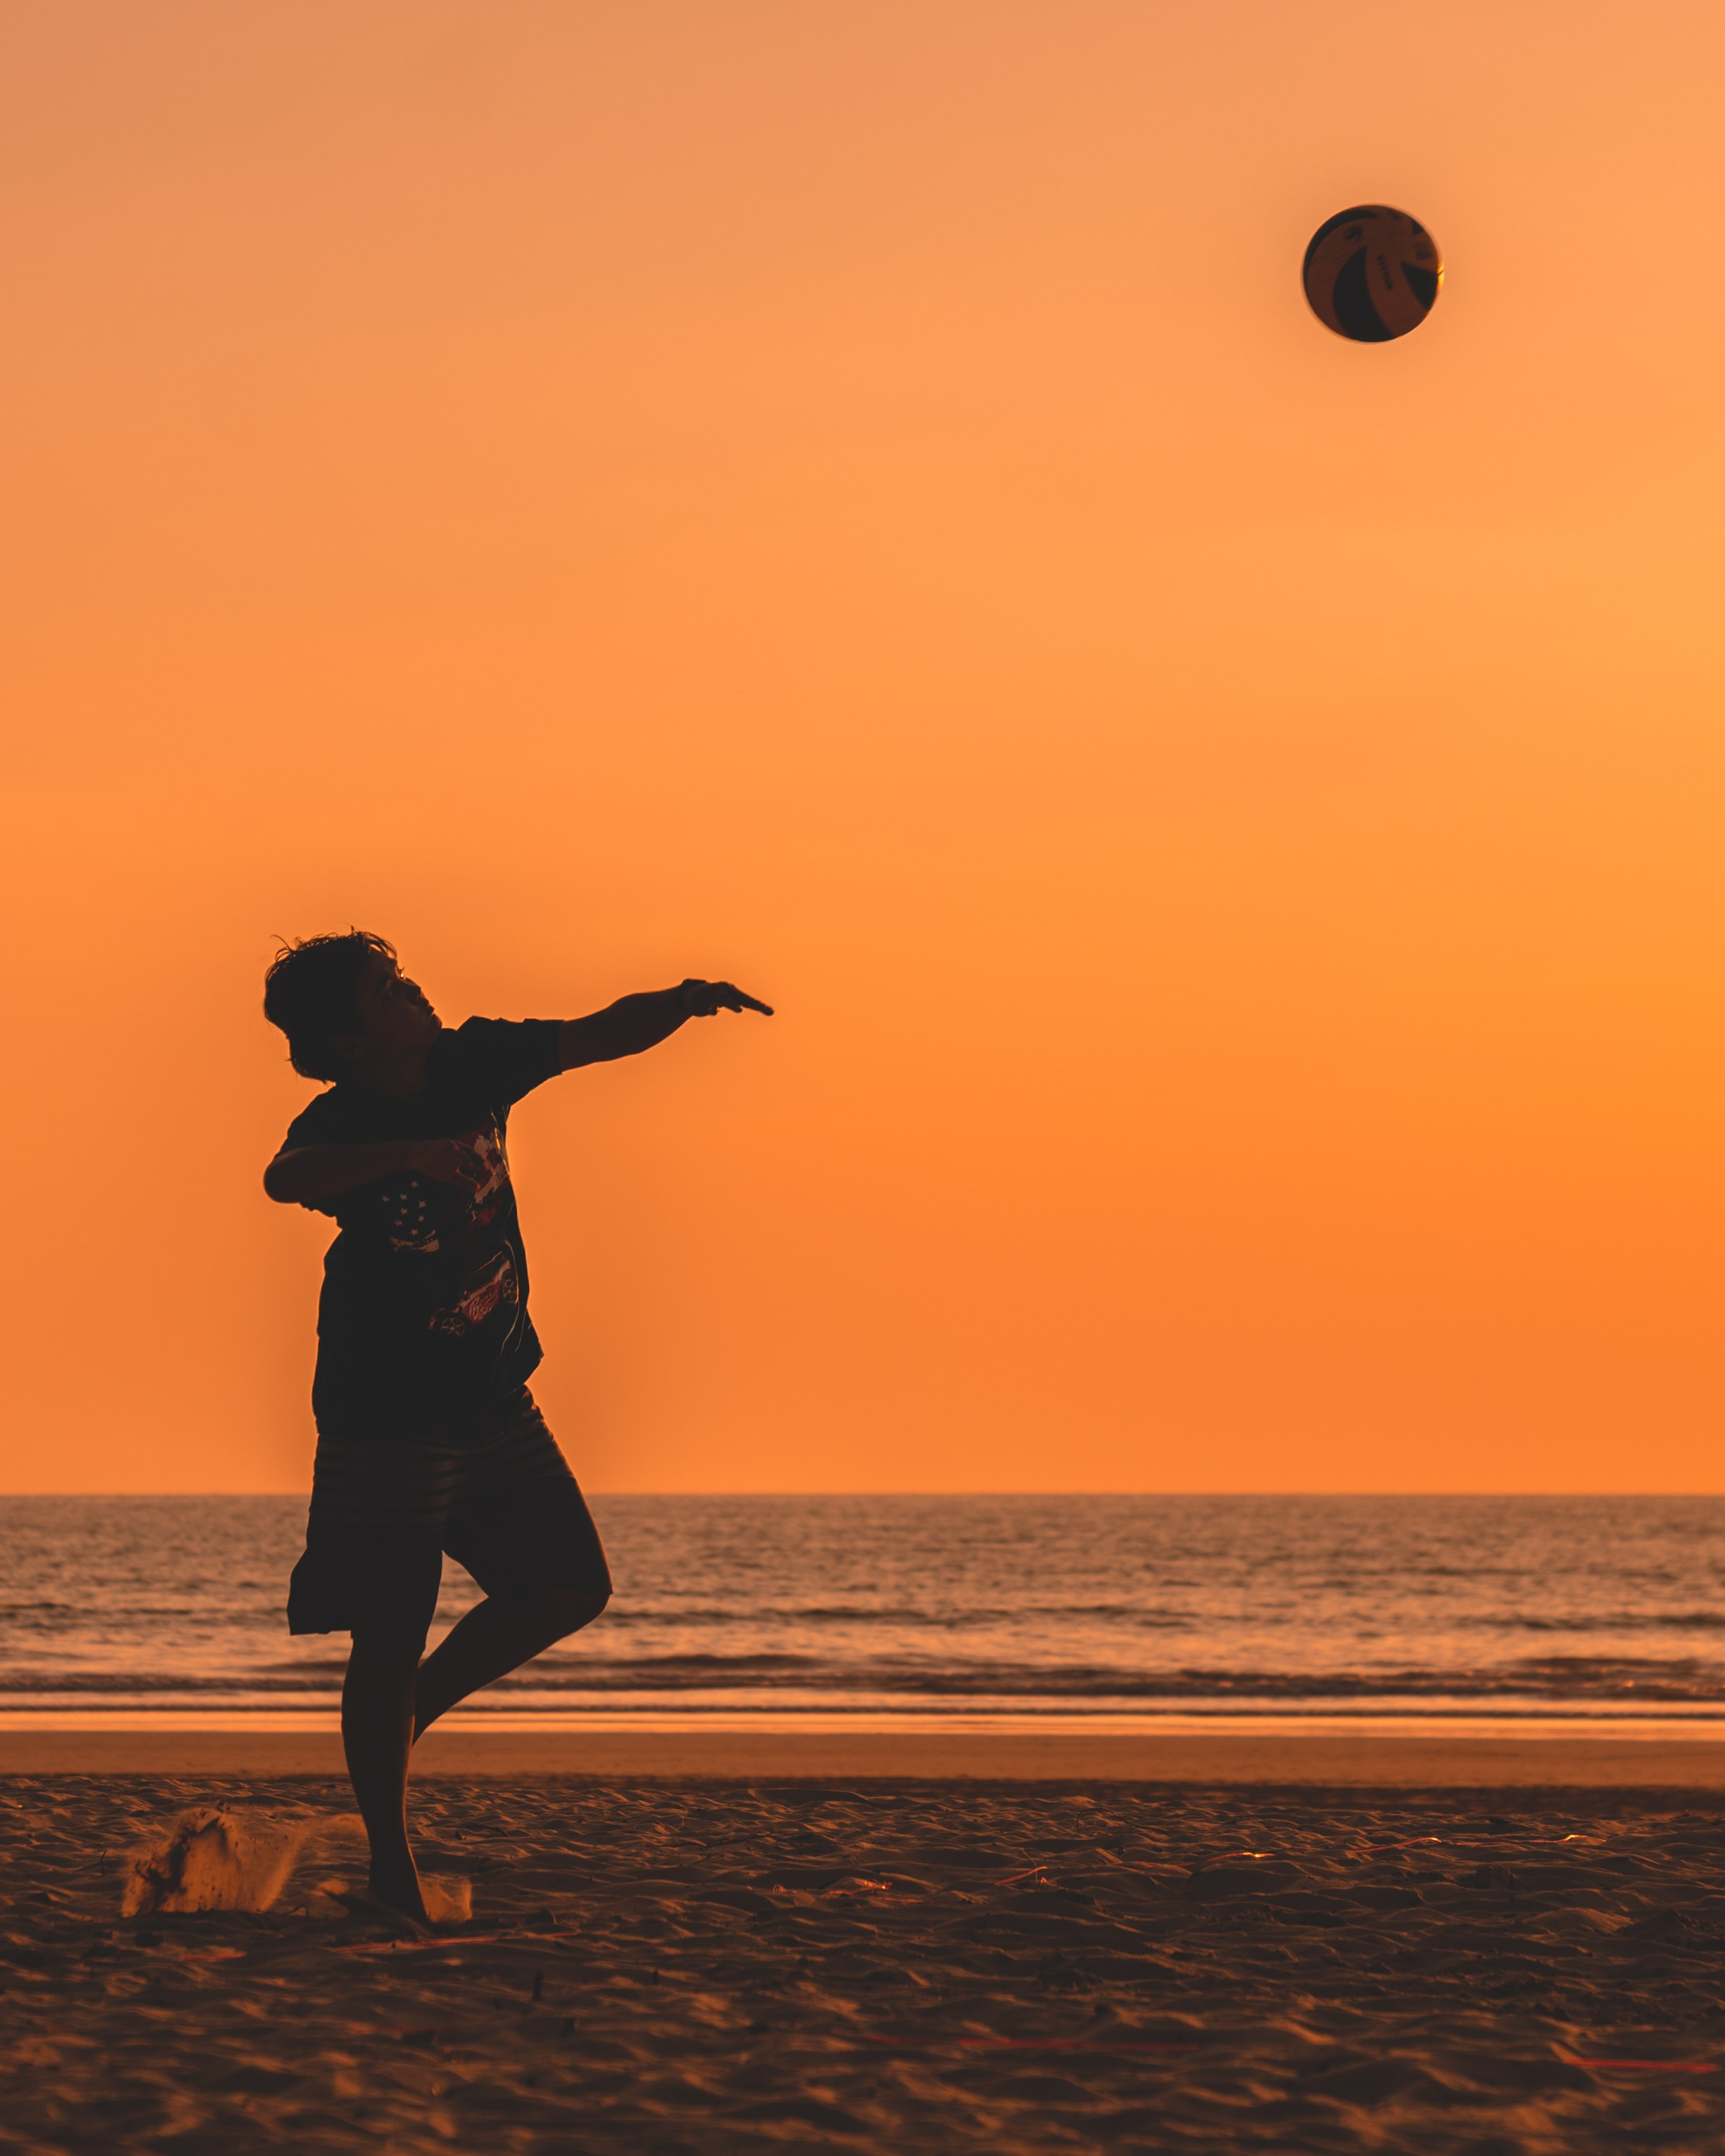 silhouette of man throwing ball near ocean at golden hour